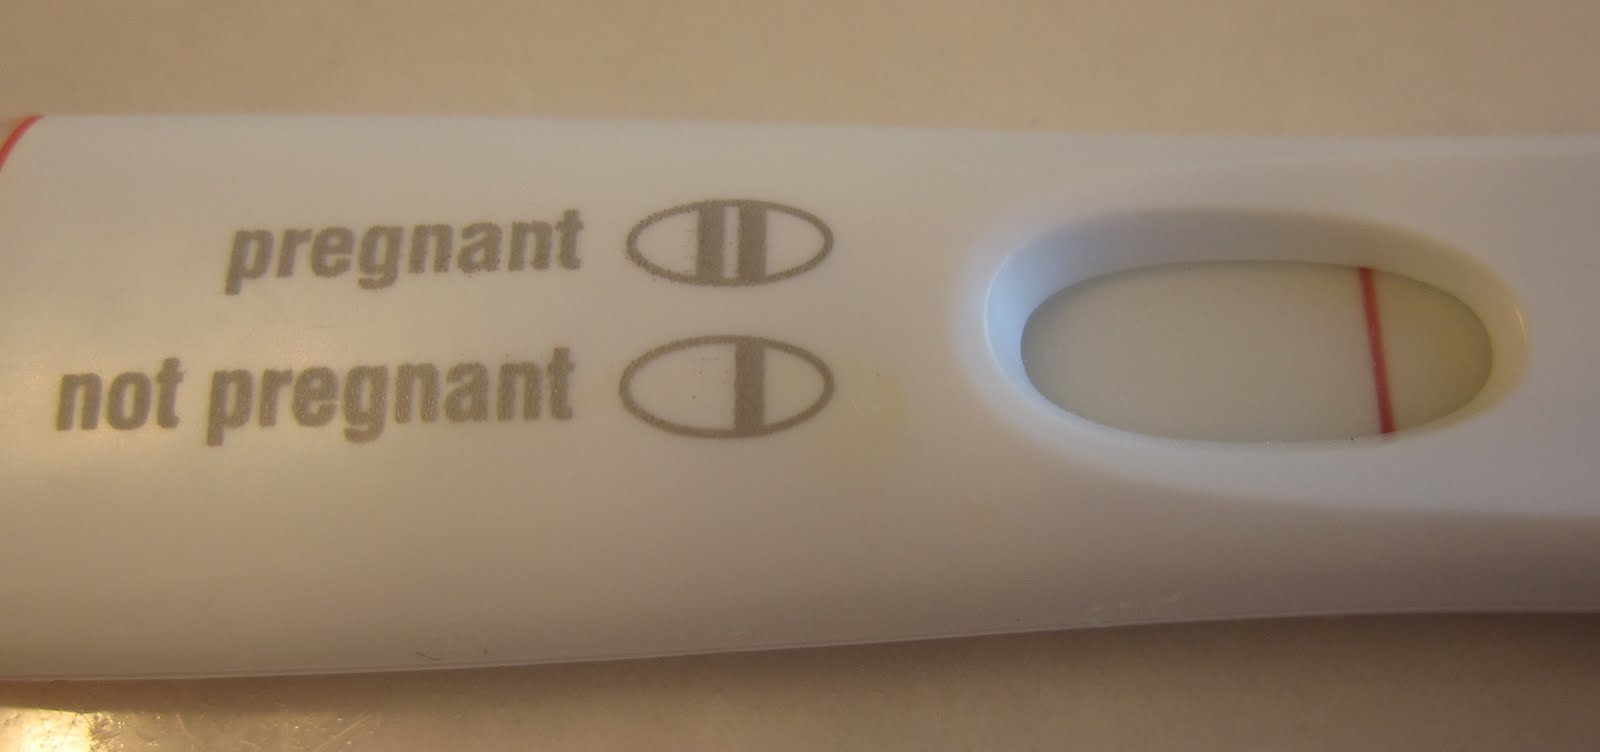 negativepregnancy-test